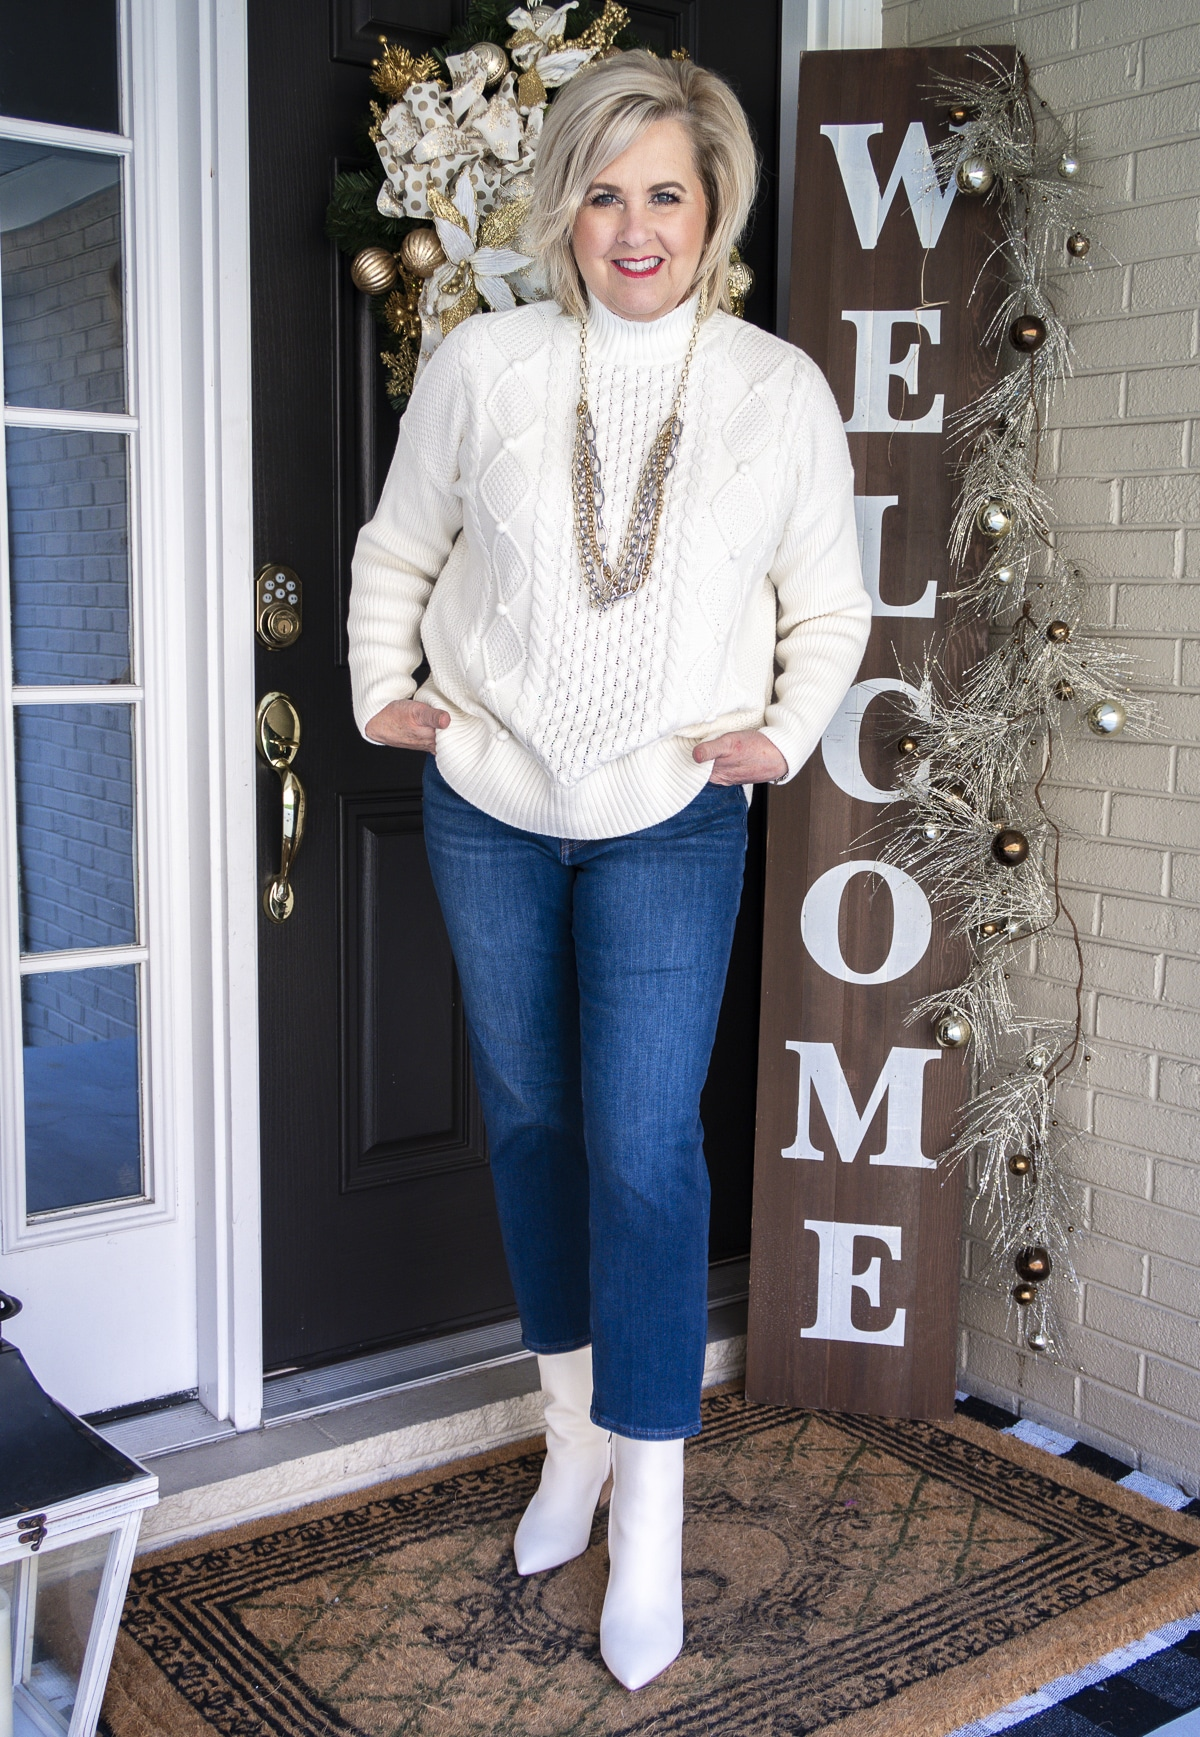 Fashion Blogger 50 Is Not Old is standing with her hands in her pockets and wearing a white cable-knit sweater, crop jeans, and white pointy toe ankle boots